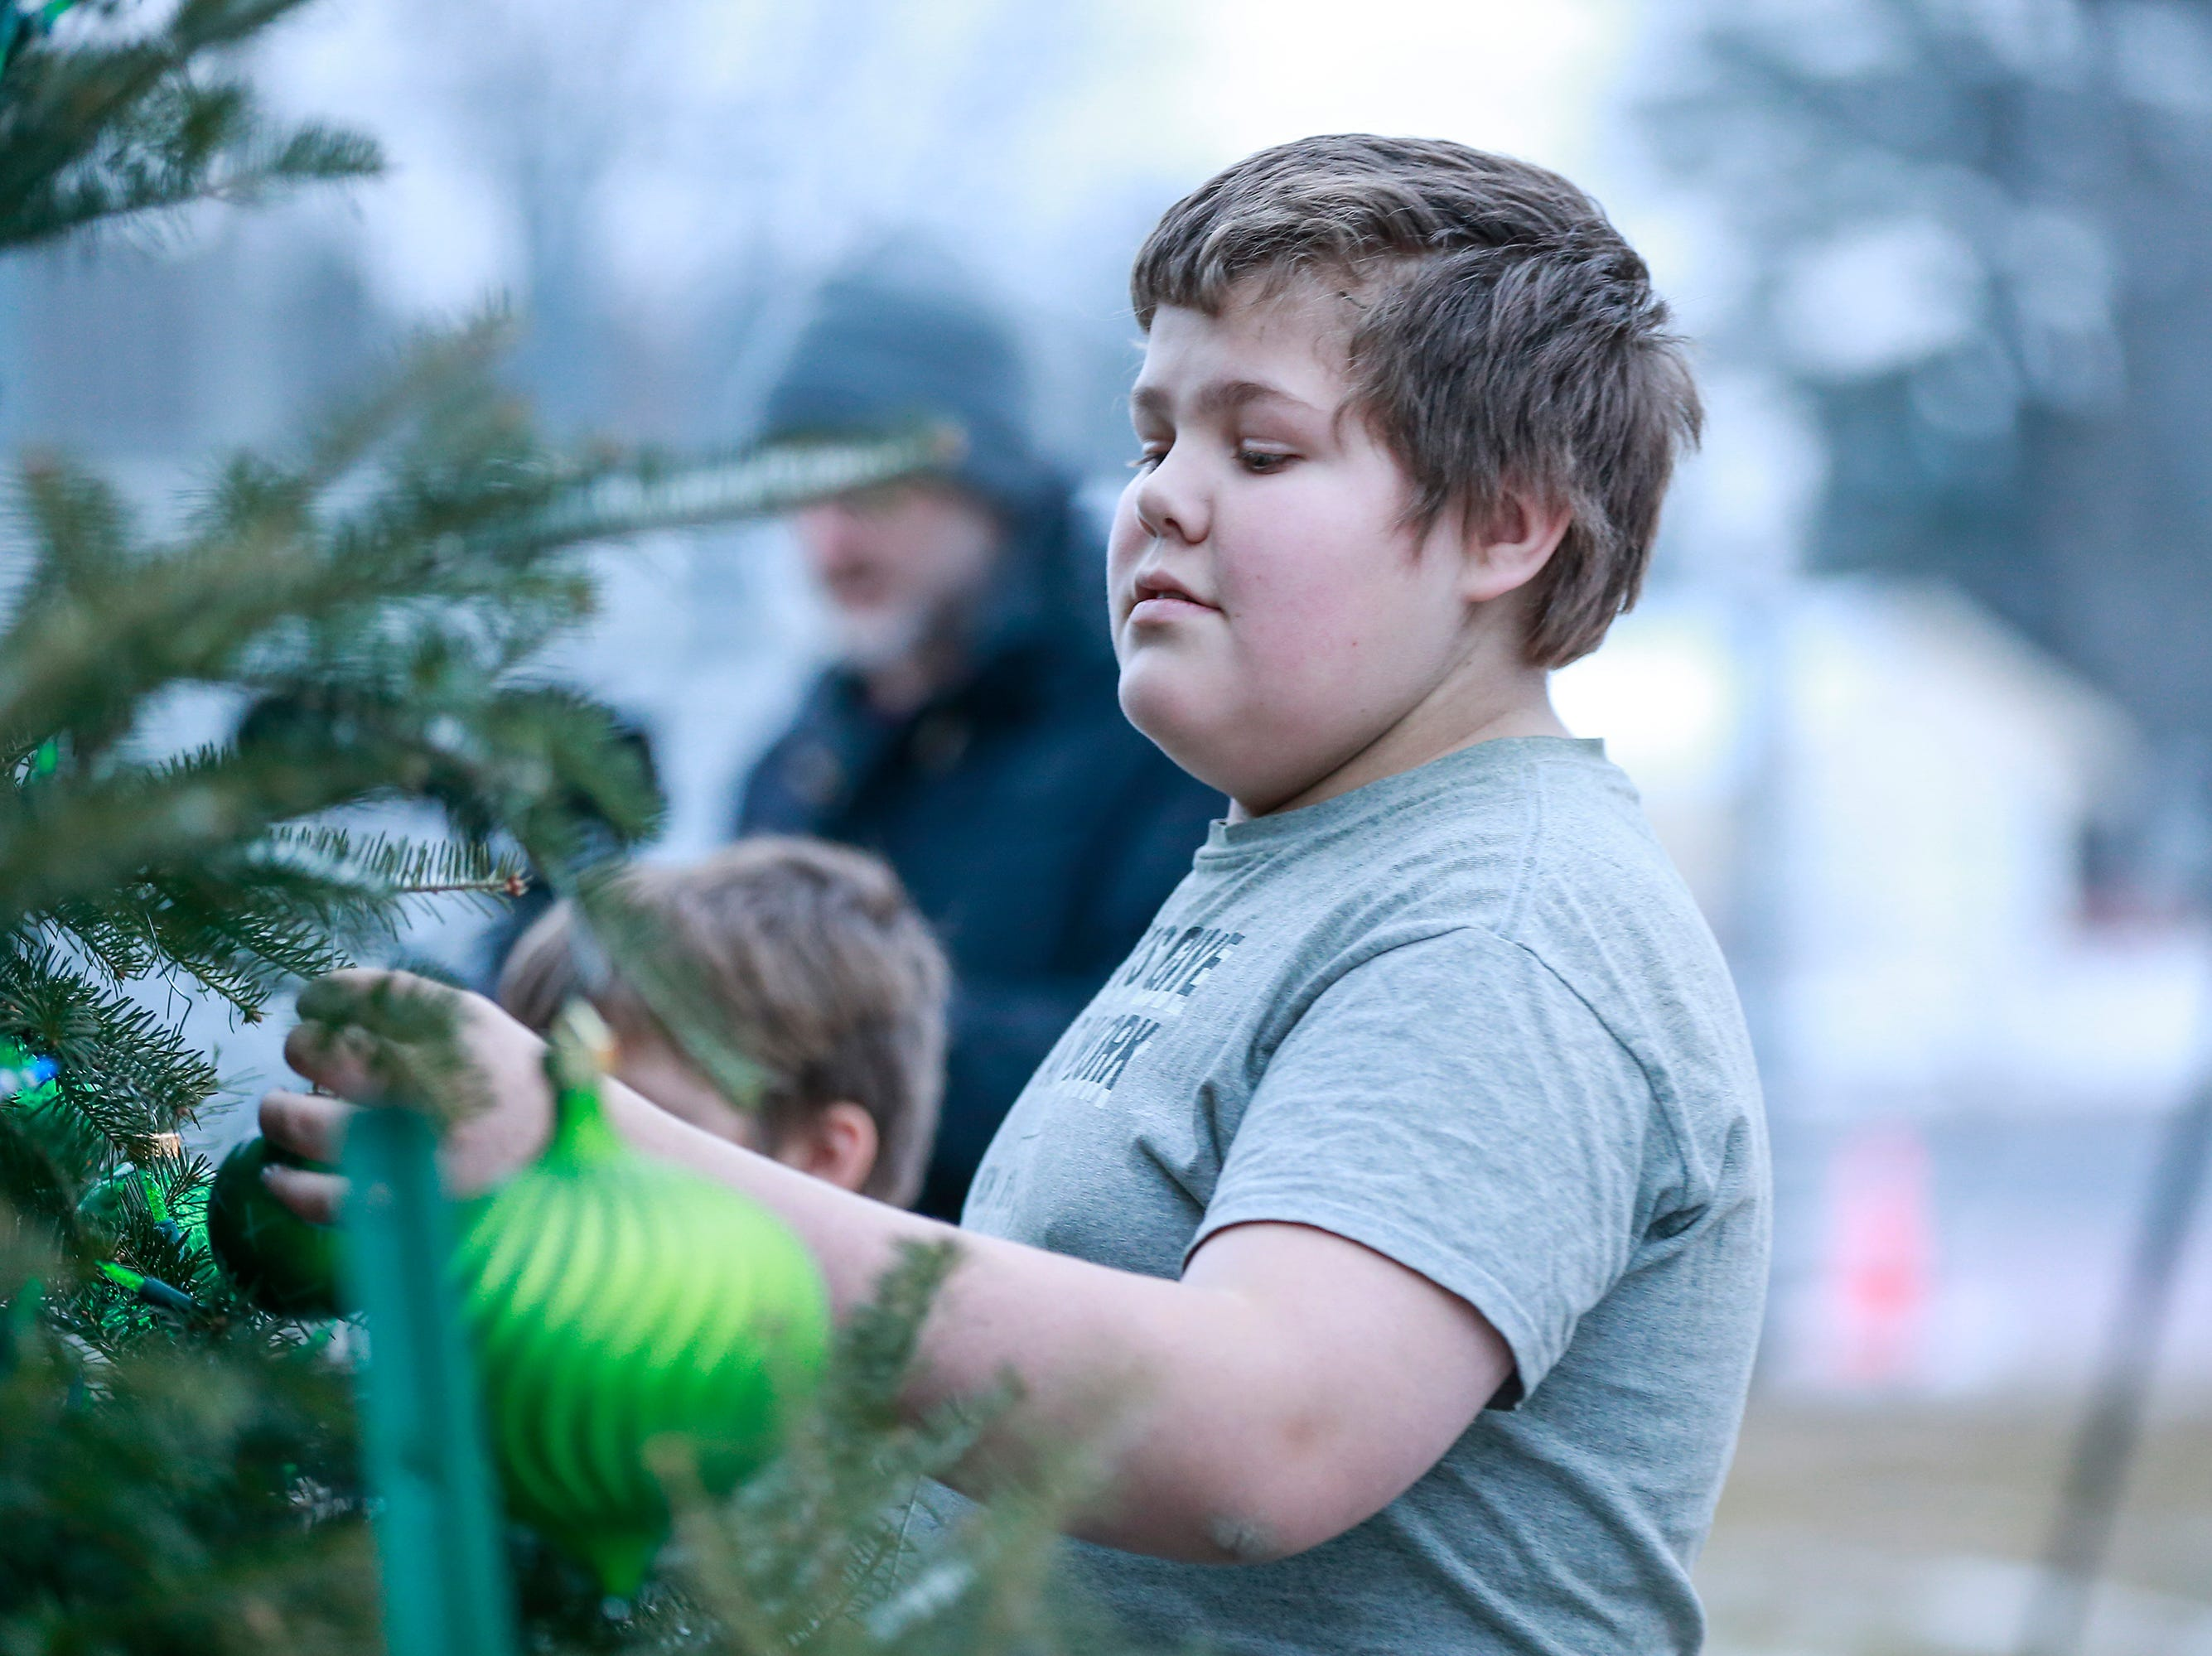 Students decorate Christmas ornaments before the lighting of a Tree of Hope for Jayme Closs ceremony Wednesday, Dec. 12, 2018, outside of Riverview Middle School in Barron, Wisc. T'xer Zhon Kha/USA TODAY NETWORK-Wisconsin